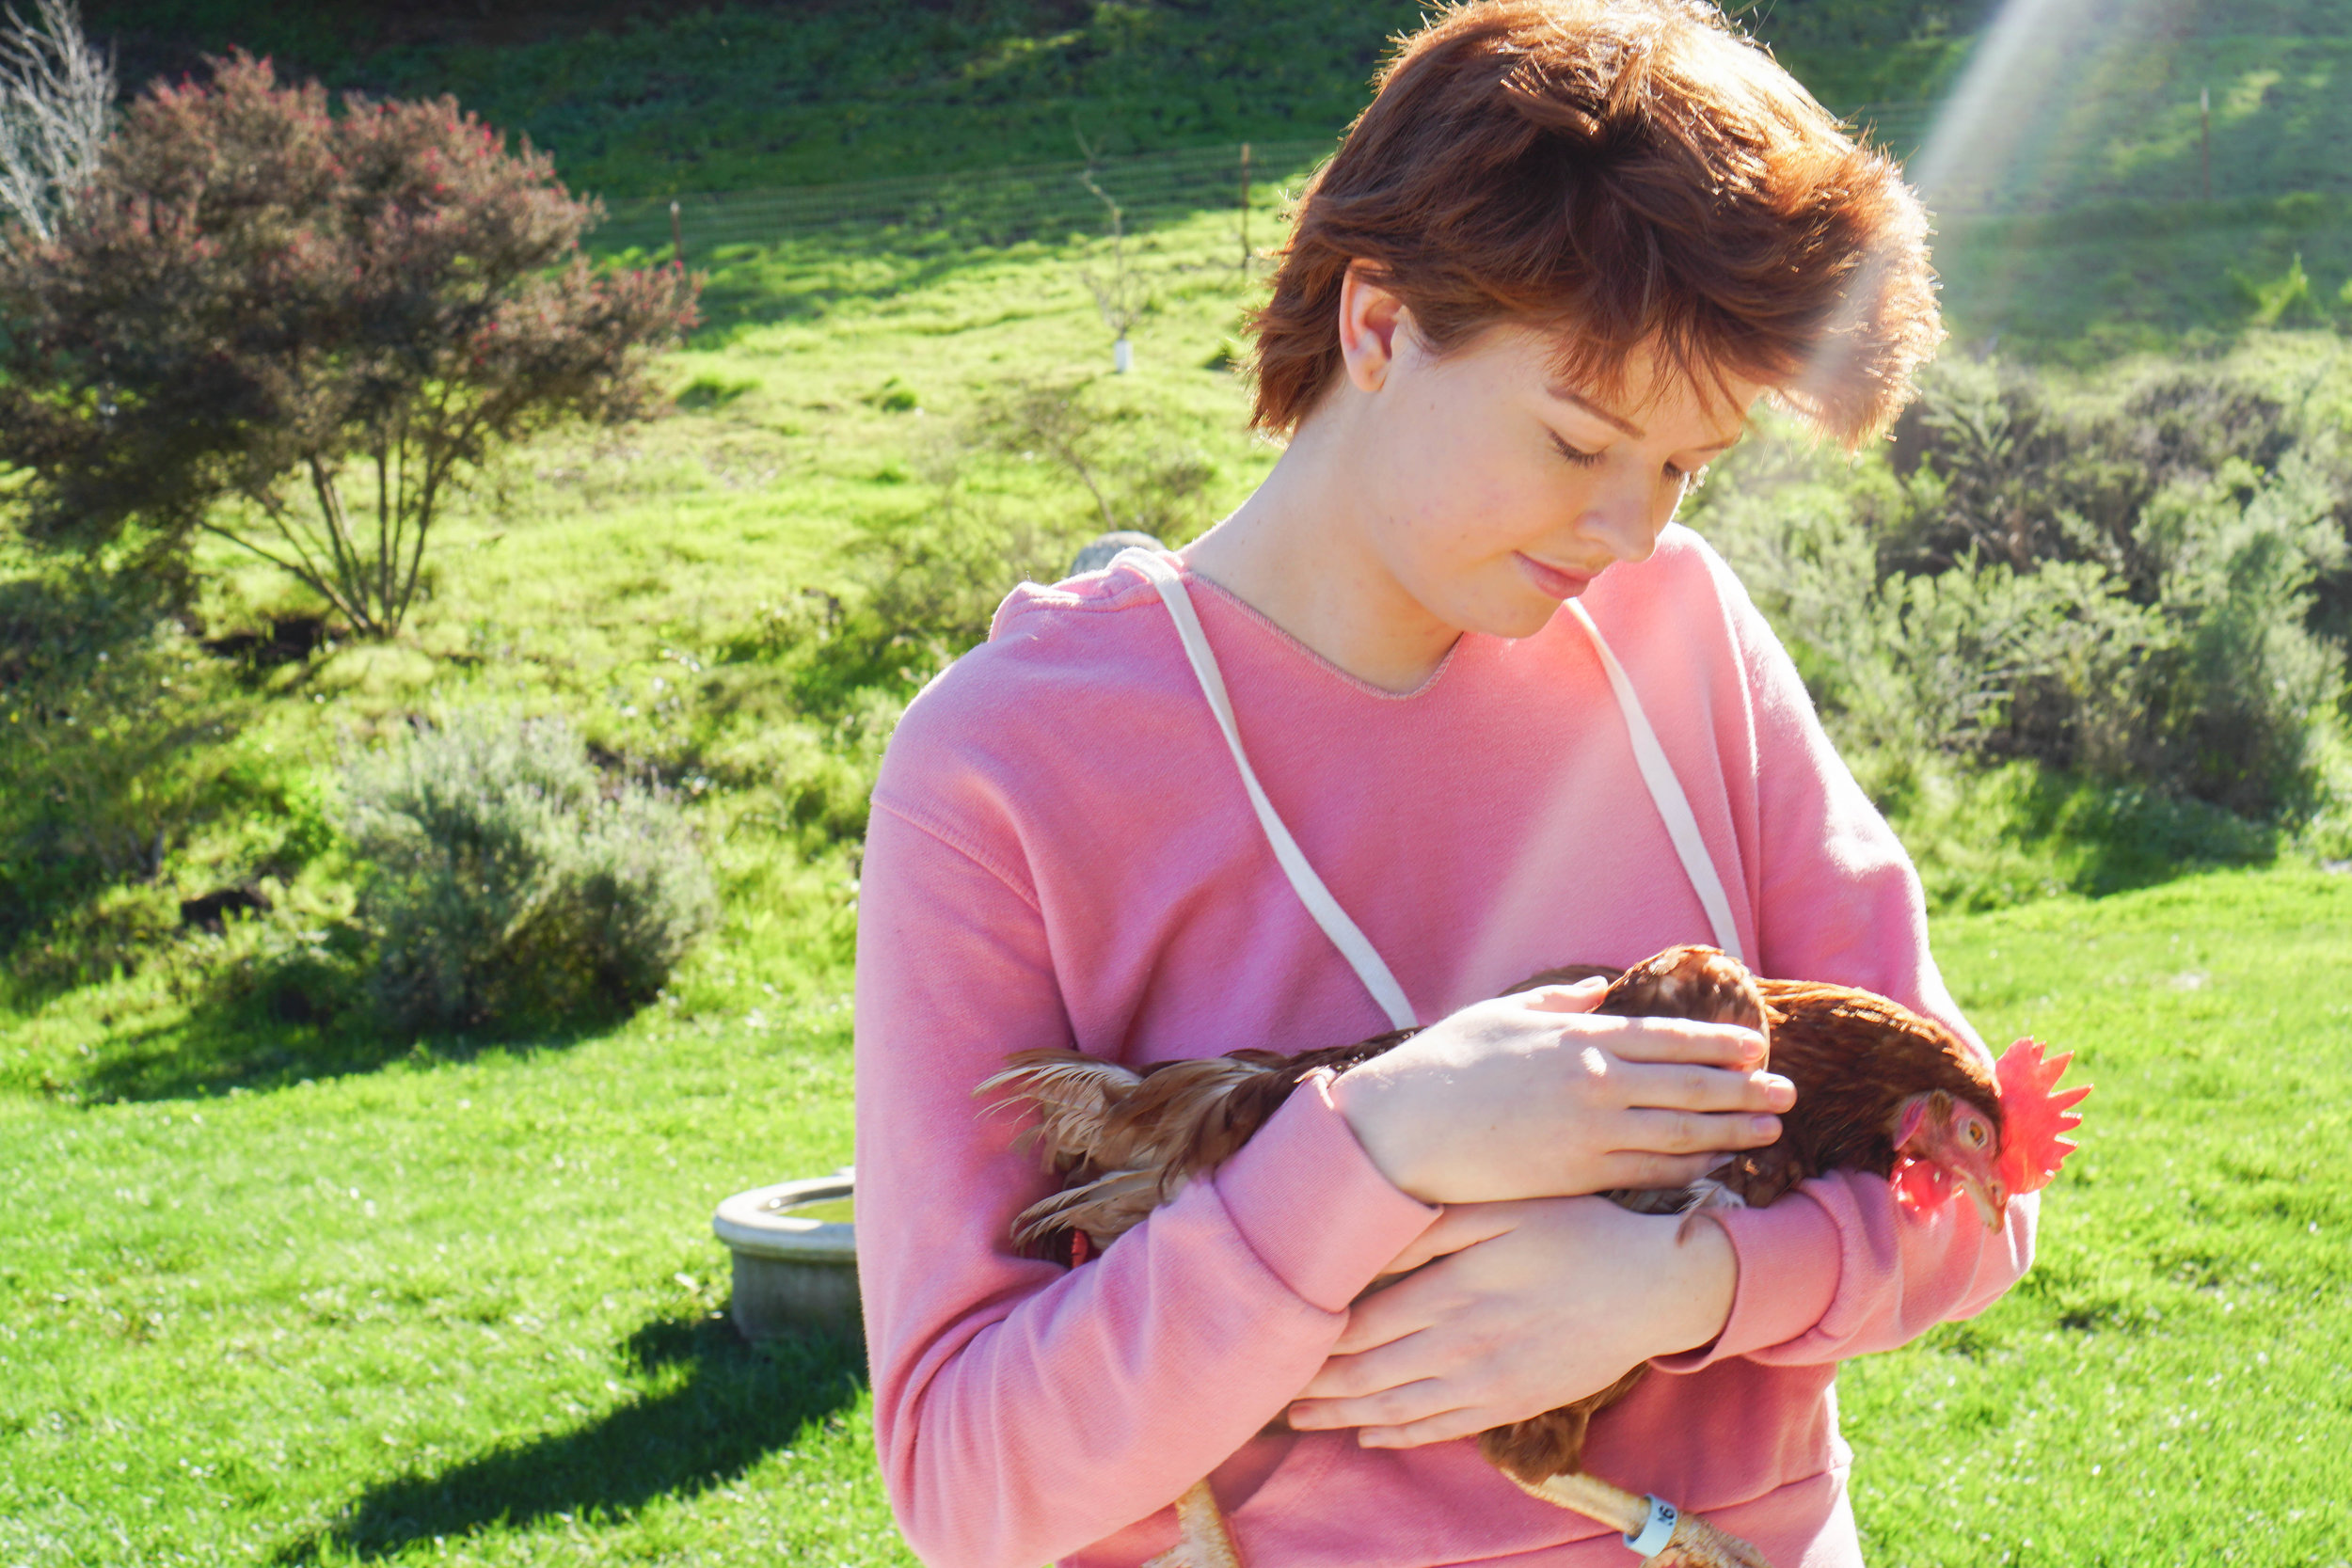 DxE activist Cassie King holds Chloe at her new sanctuary home